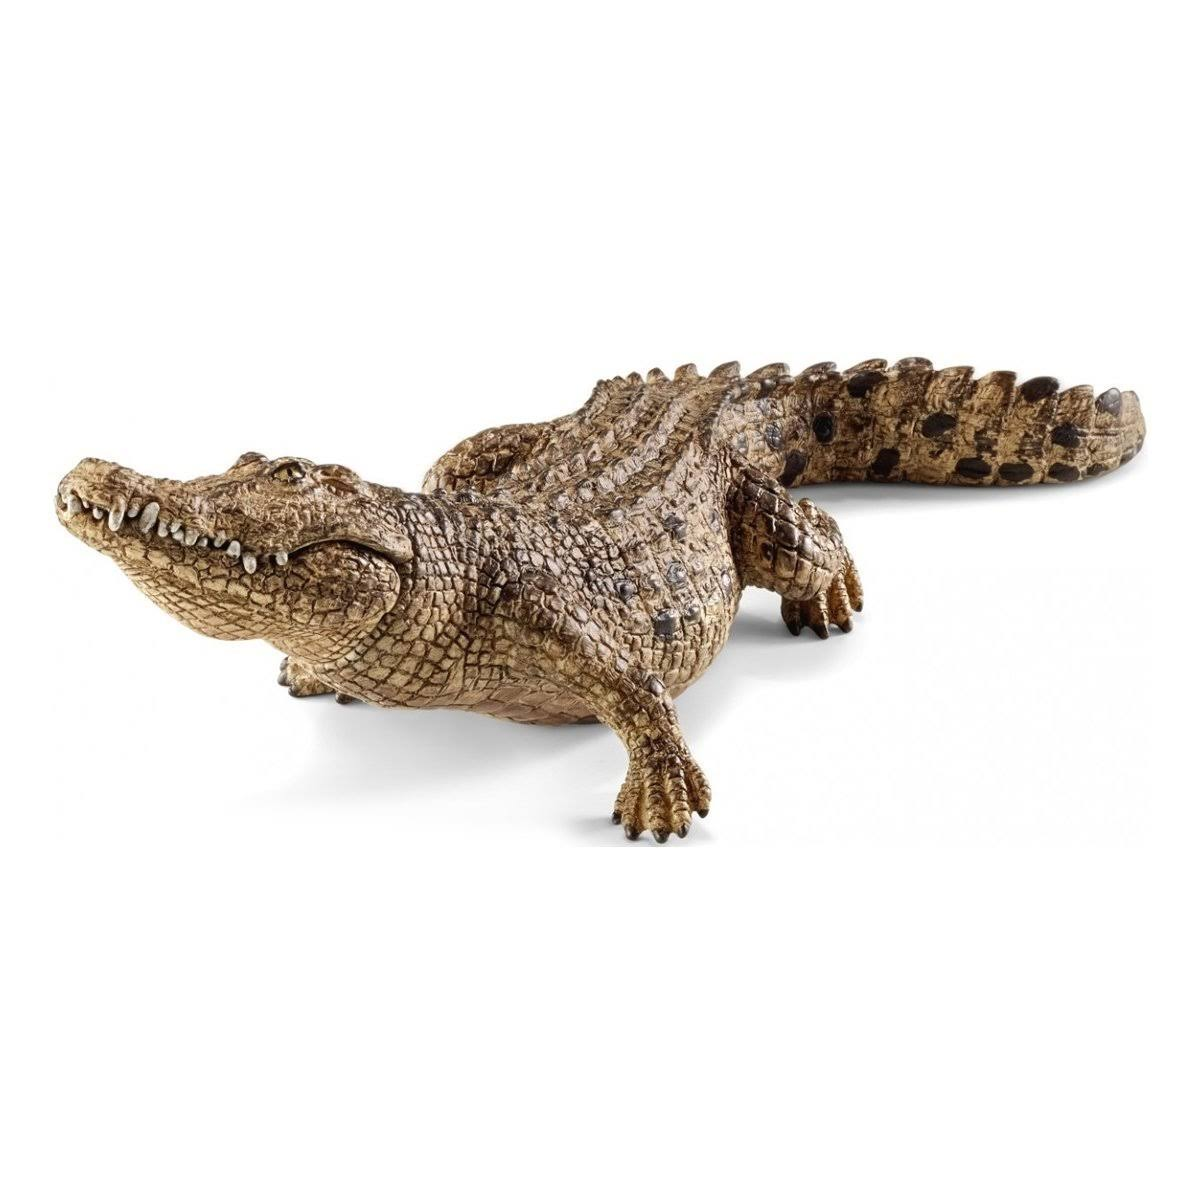 Schleich Crocodile Figure - 14736